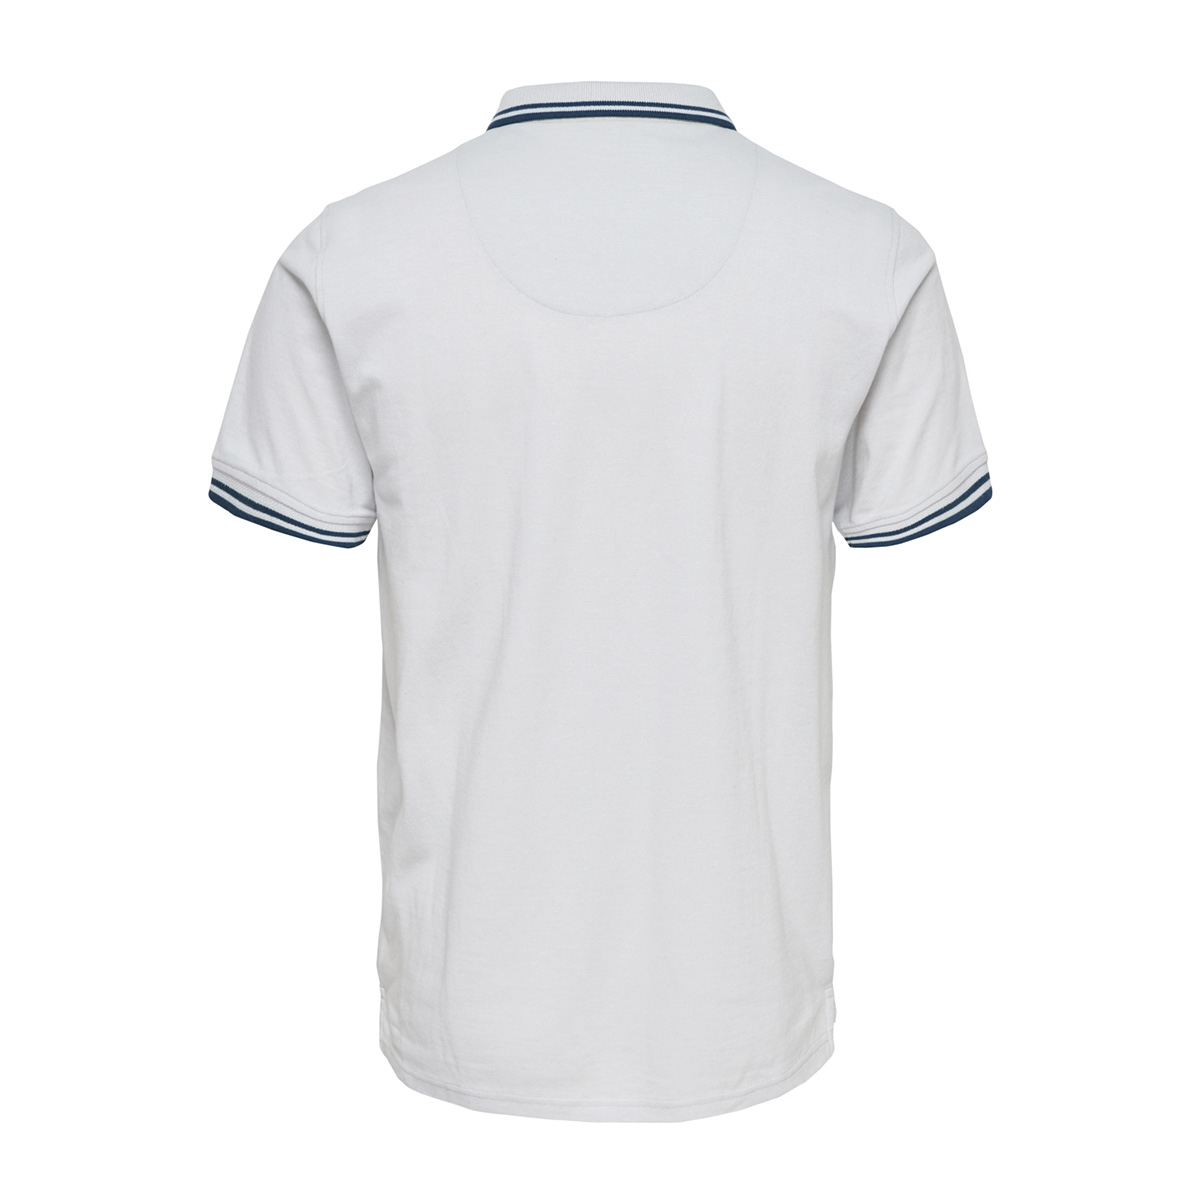 onsstan ss fitted polo tee (6560) noos 22011349 only & sons polo cloud dancer